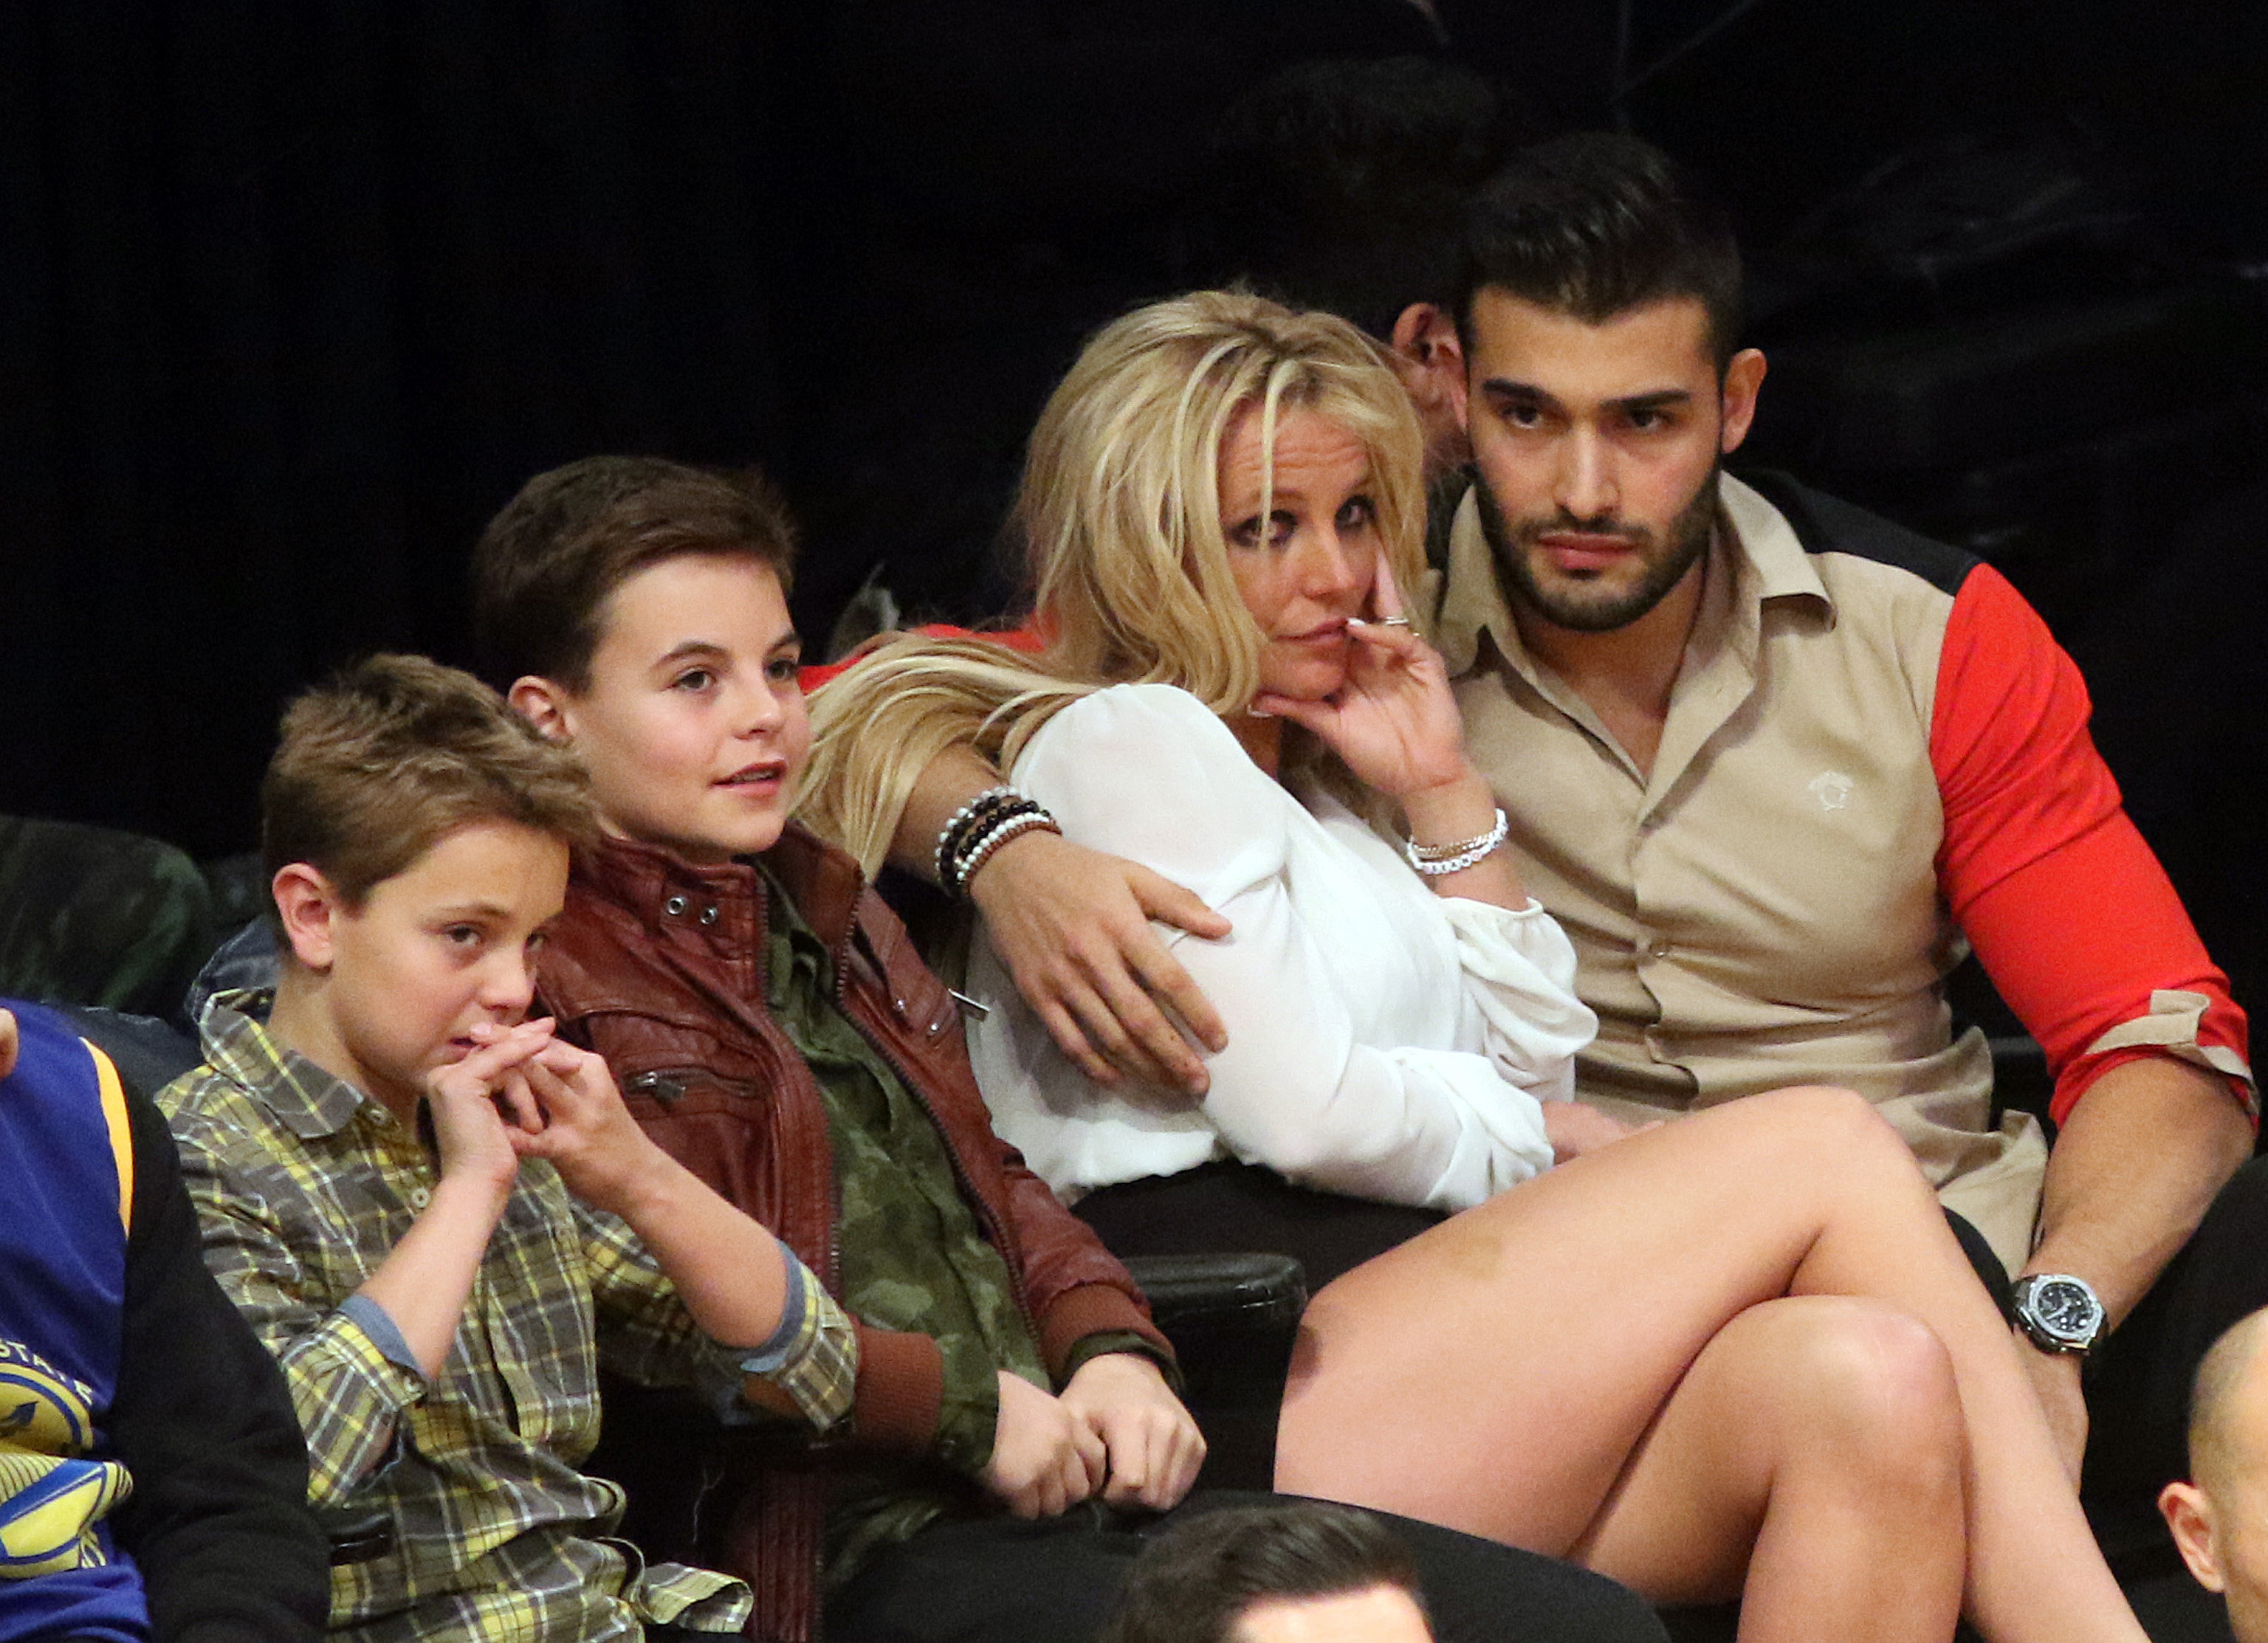 Everyone reckons Britney is engaged thanks to this photo